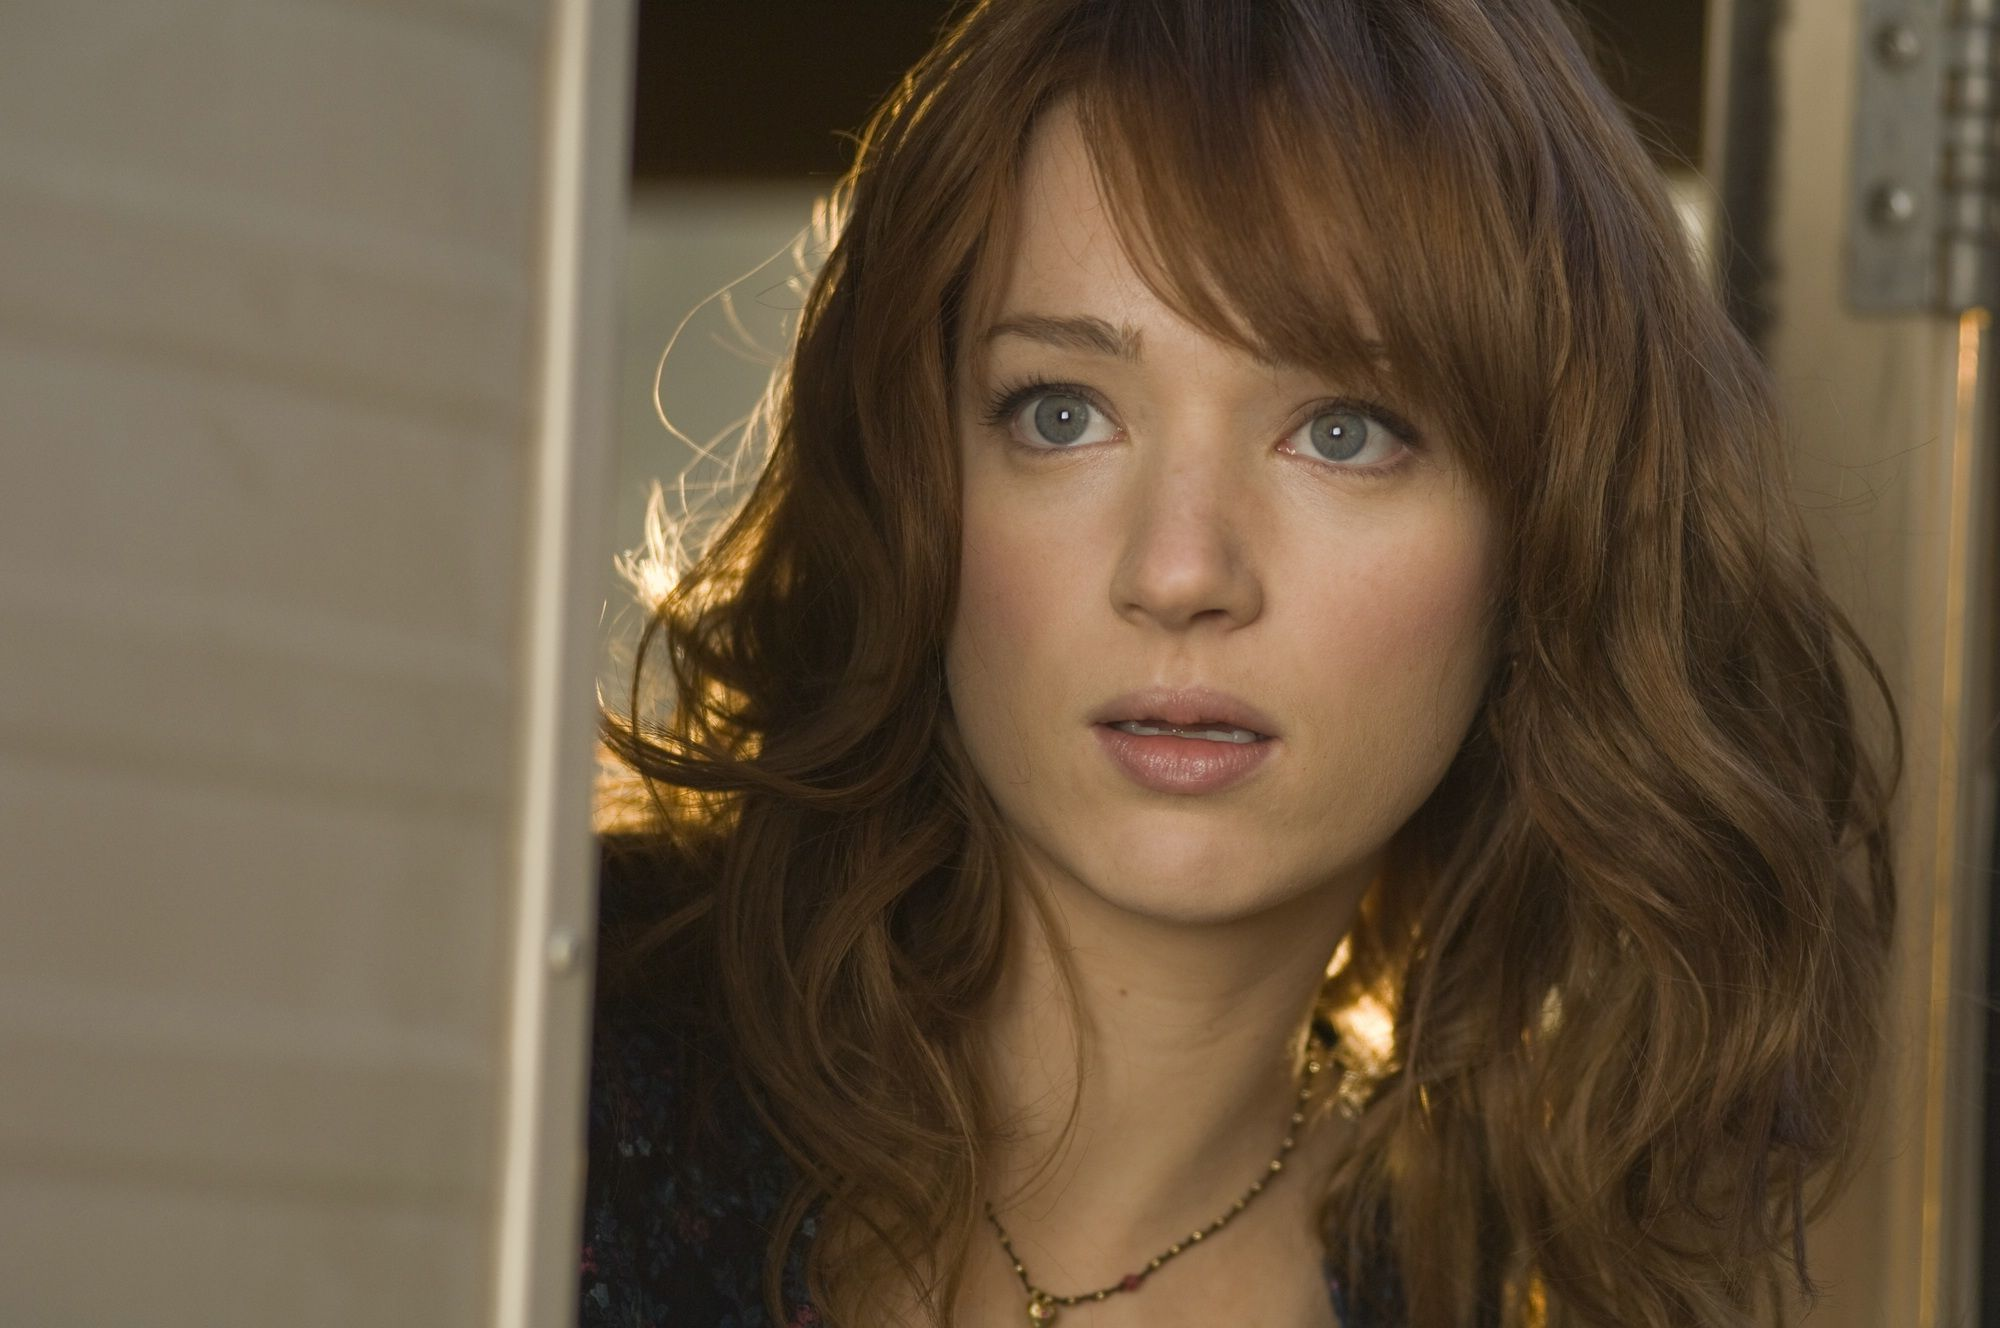 2000x1328 - Kristen Connolly Wallpapers 1